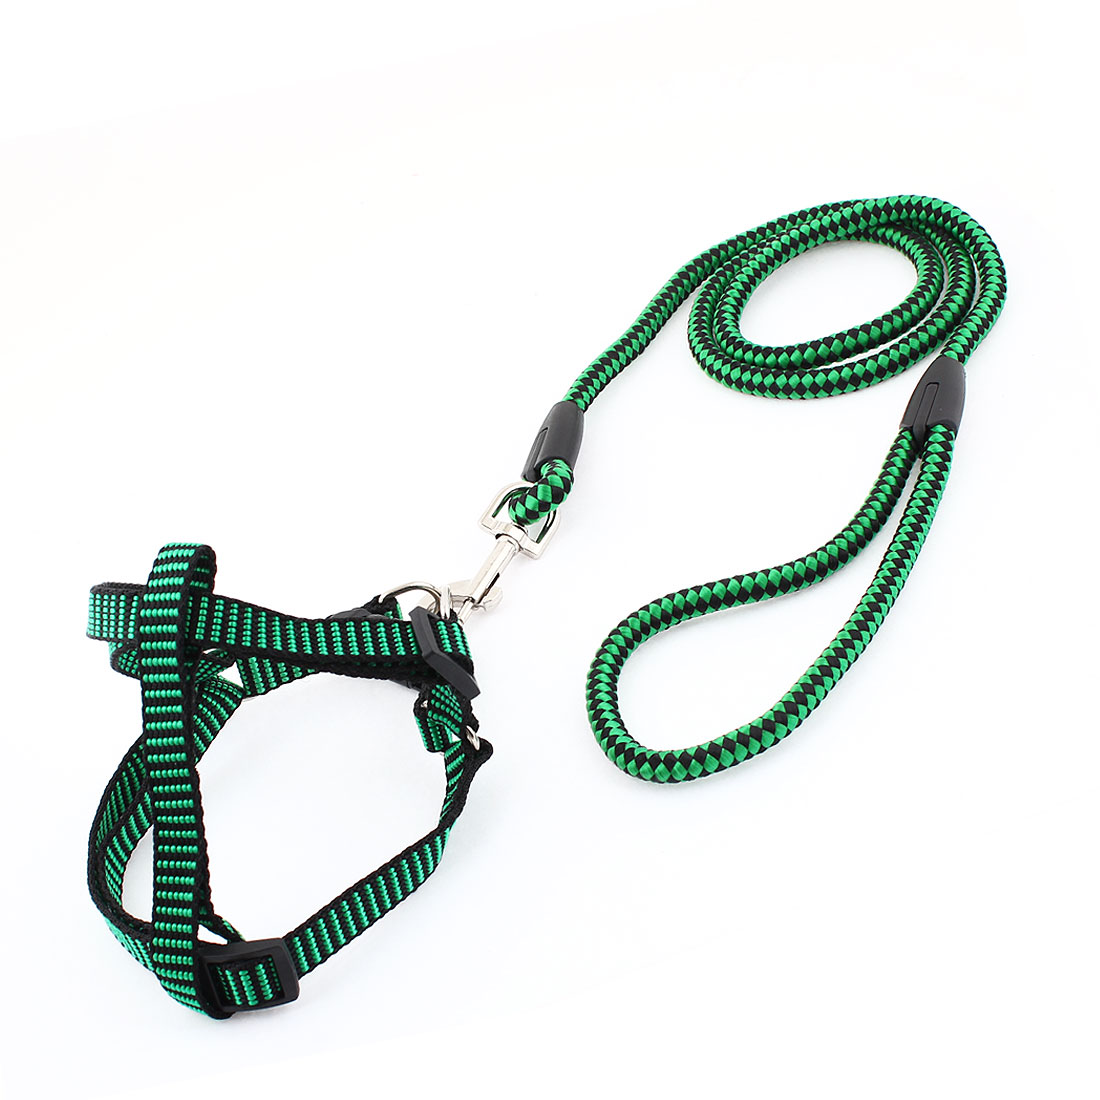 1cm Width Black Green Nylon Ajustable Harness Halter Leash for Pet Dog